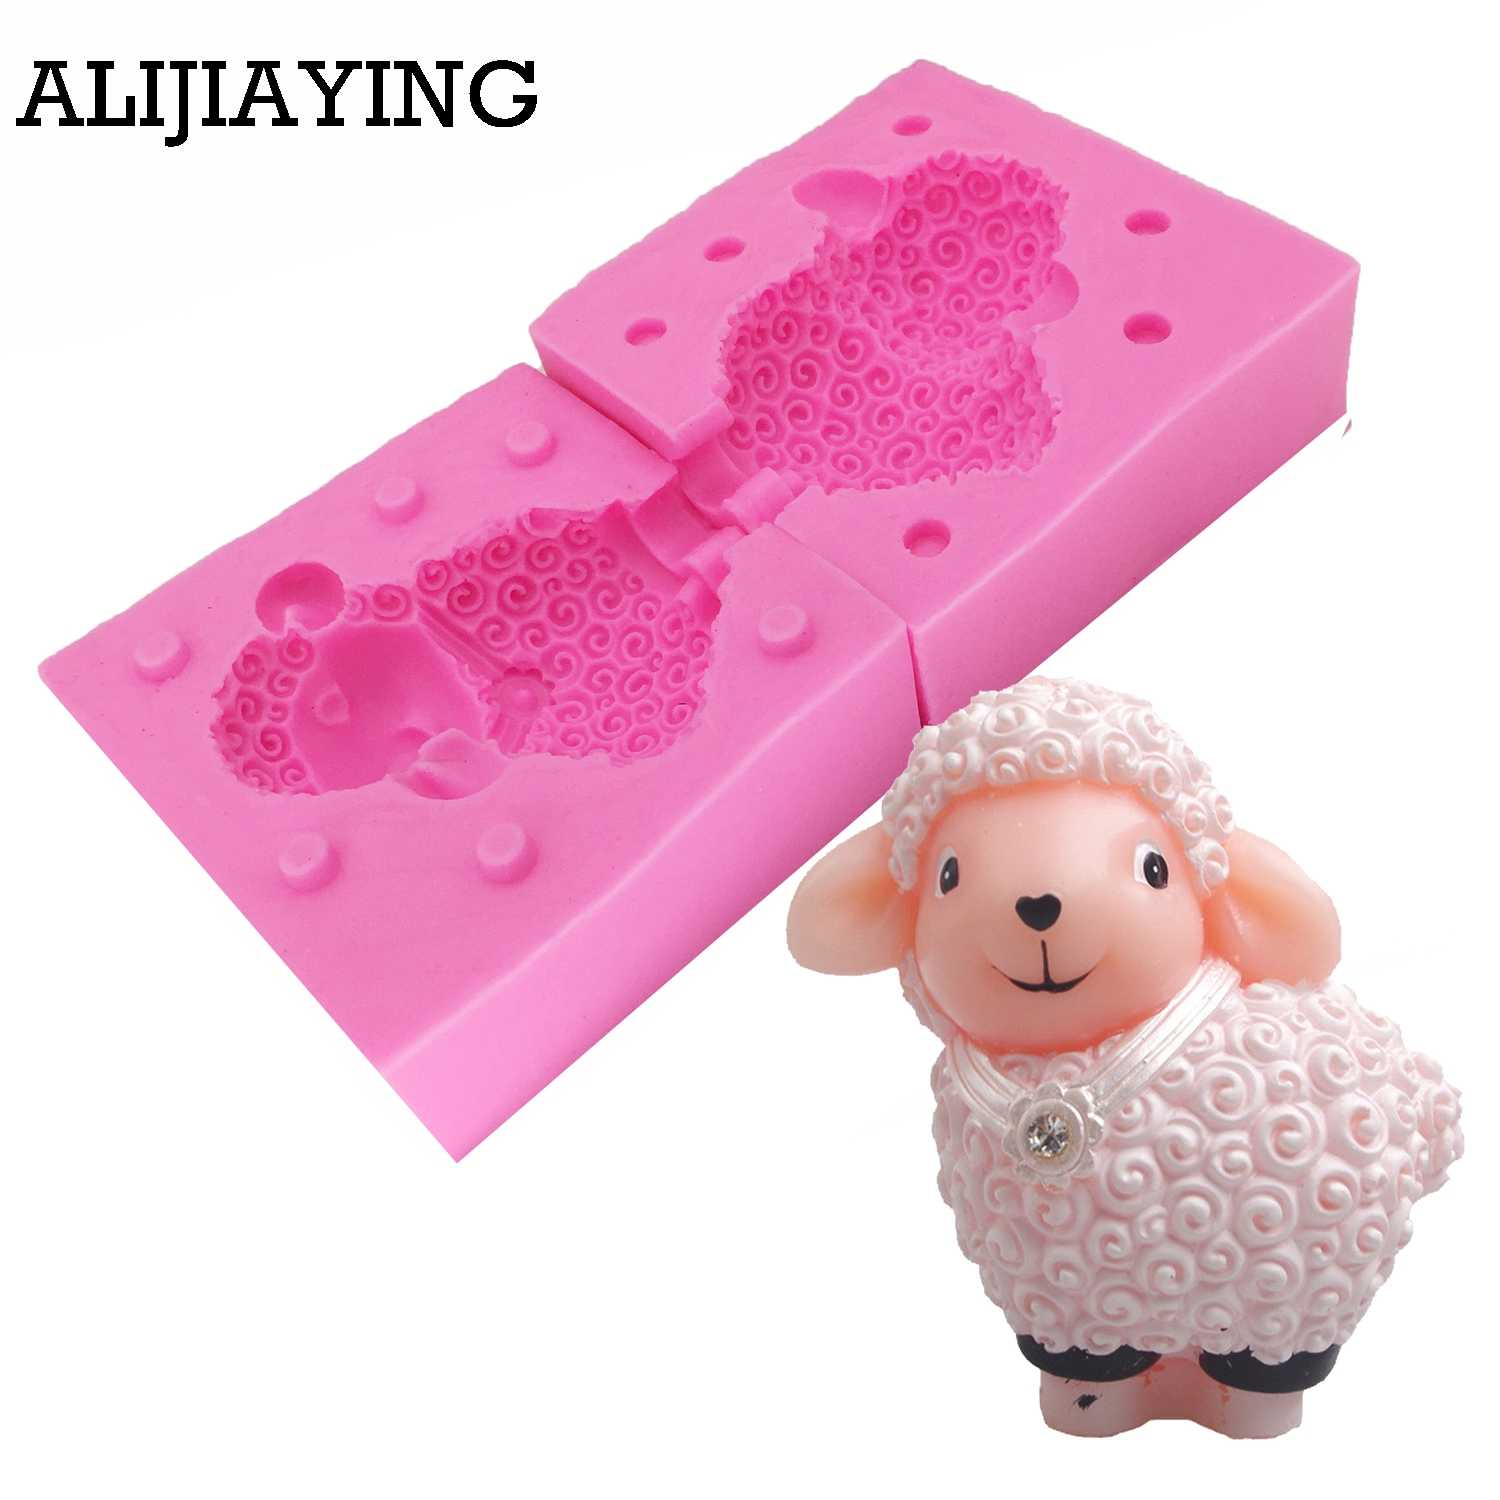 3D Sheep Silicone Fondant Cake Mold Soap Chocolate Candy Mould DIY Decor